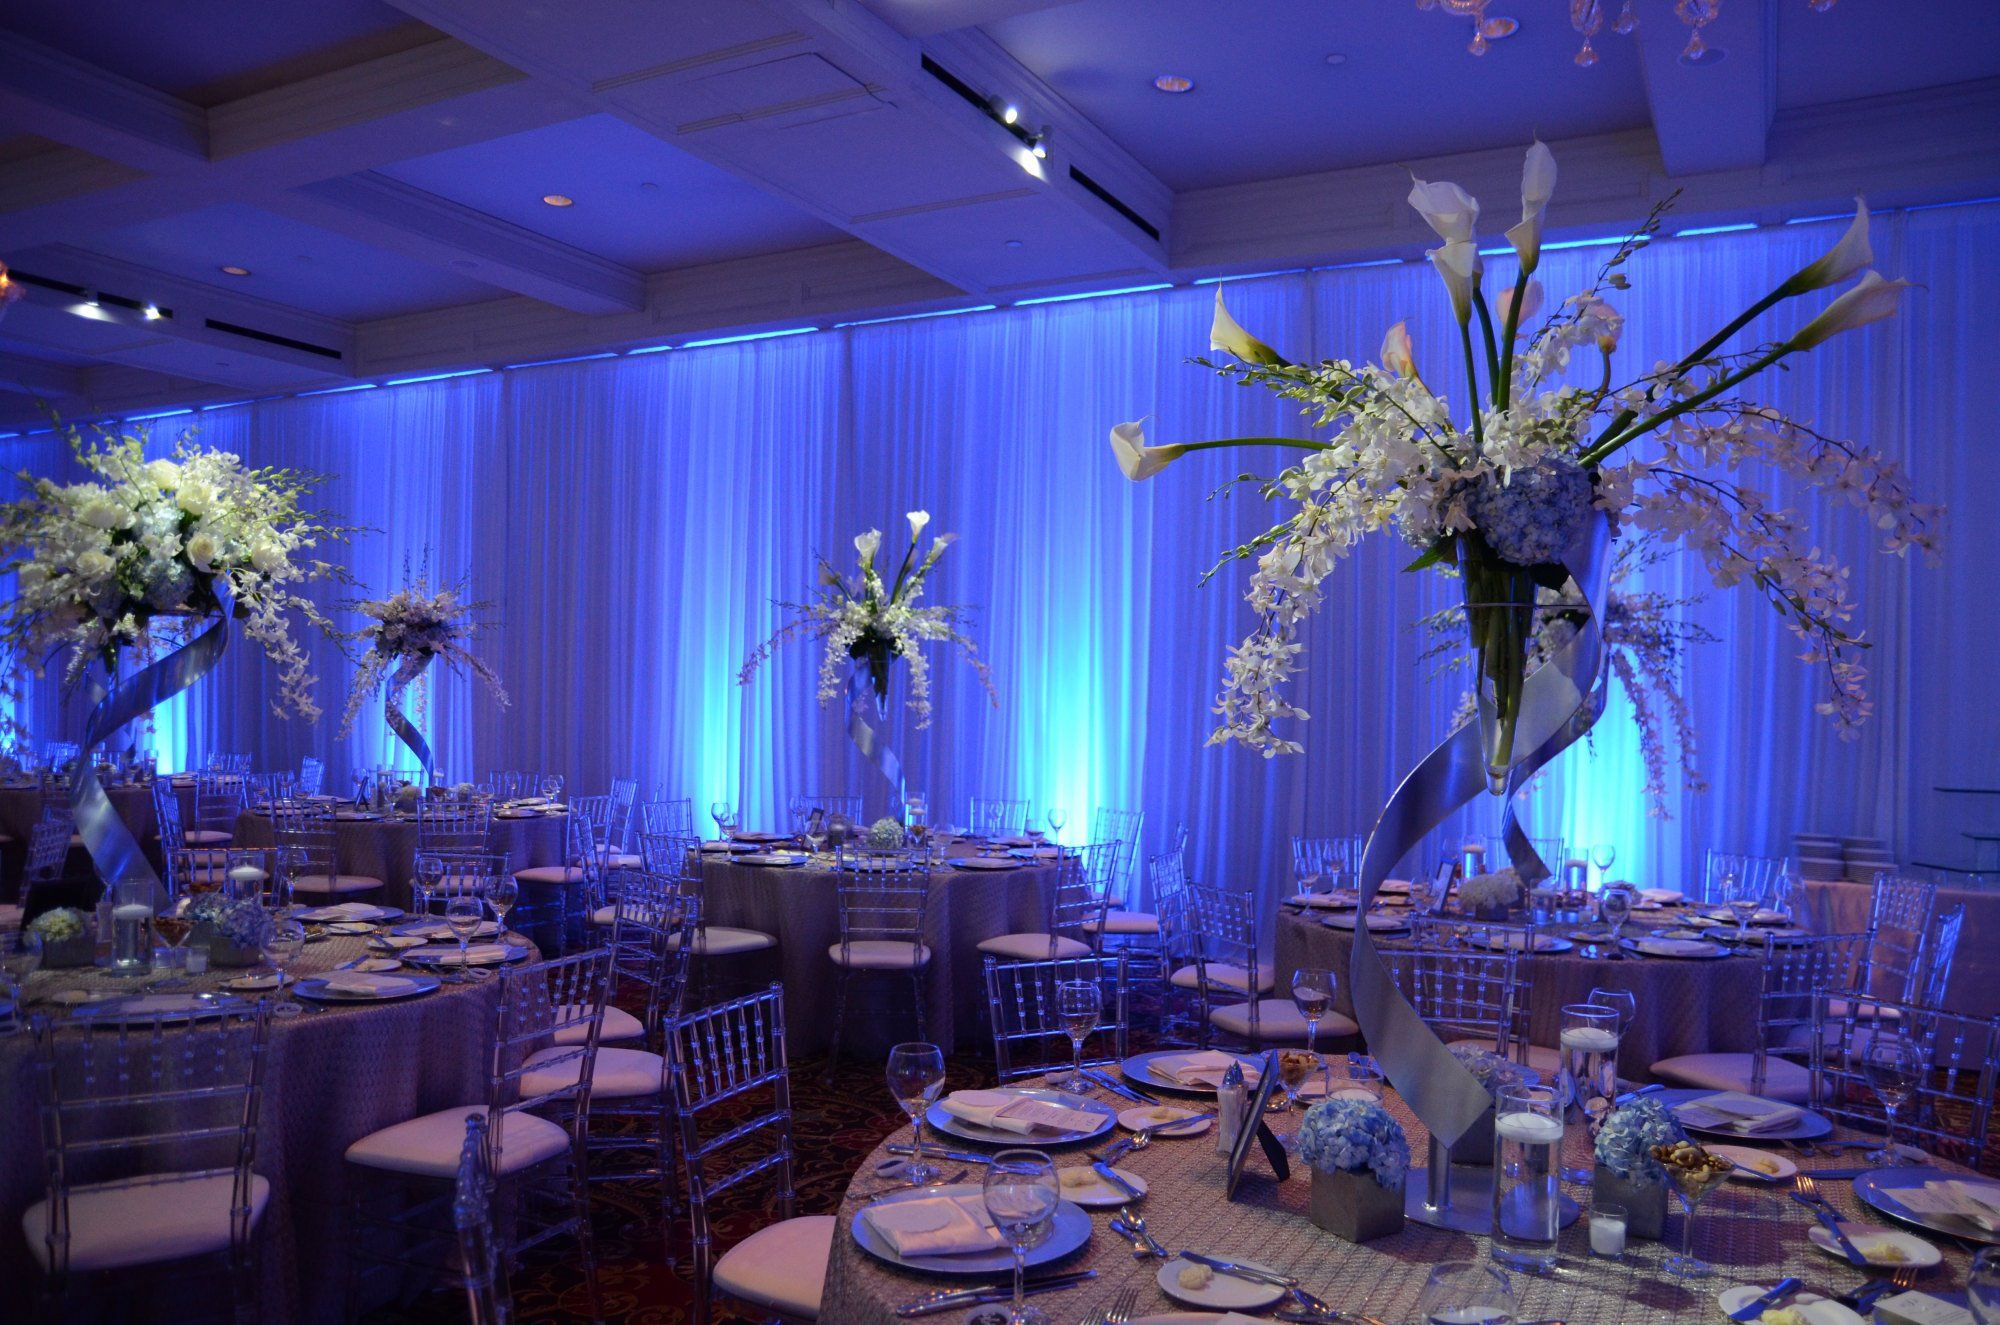 Michigan Led Uplighting Rental Service For Weddings And